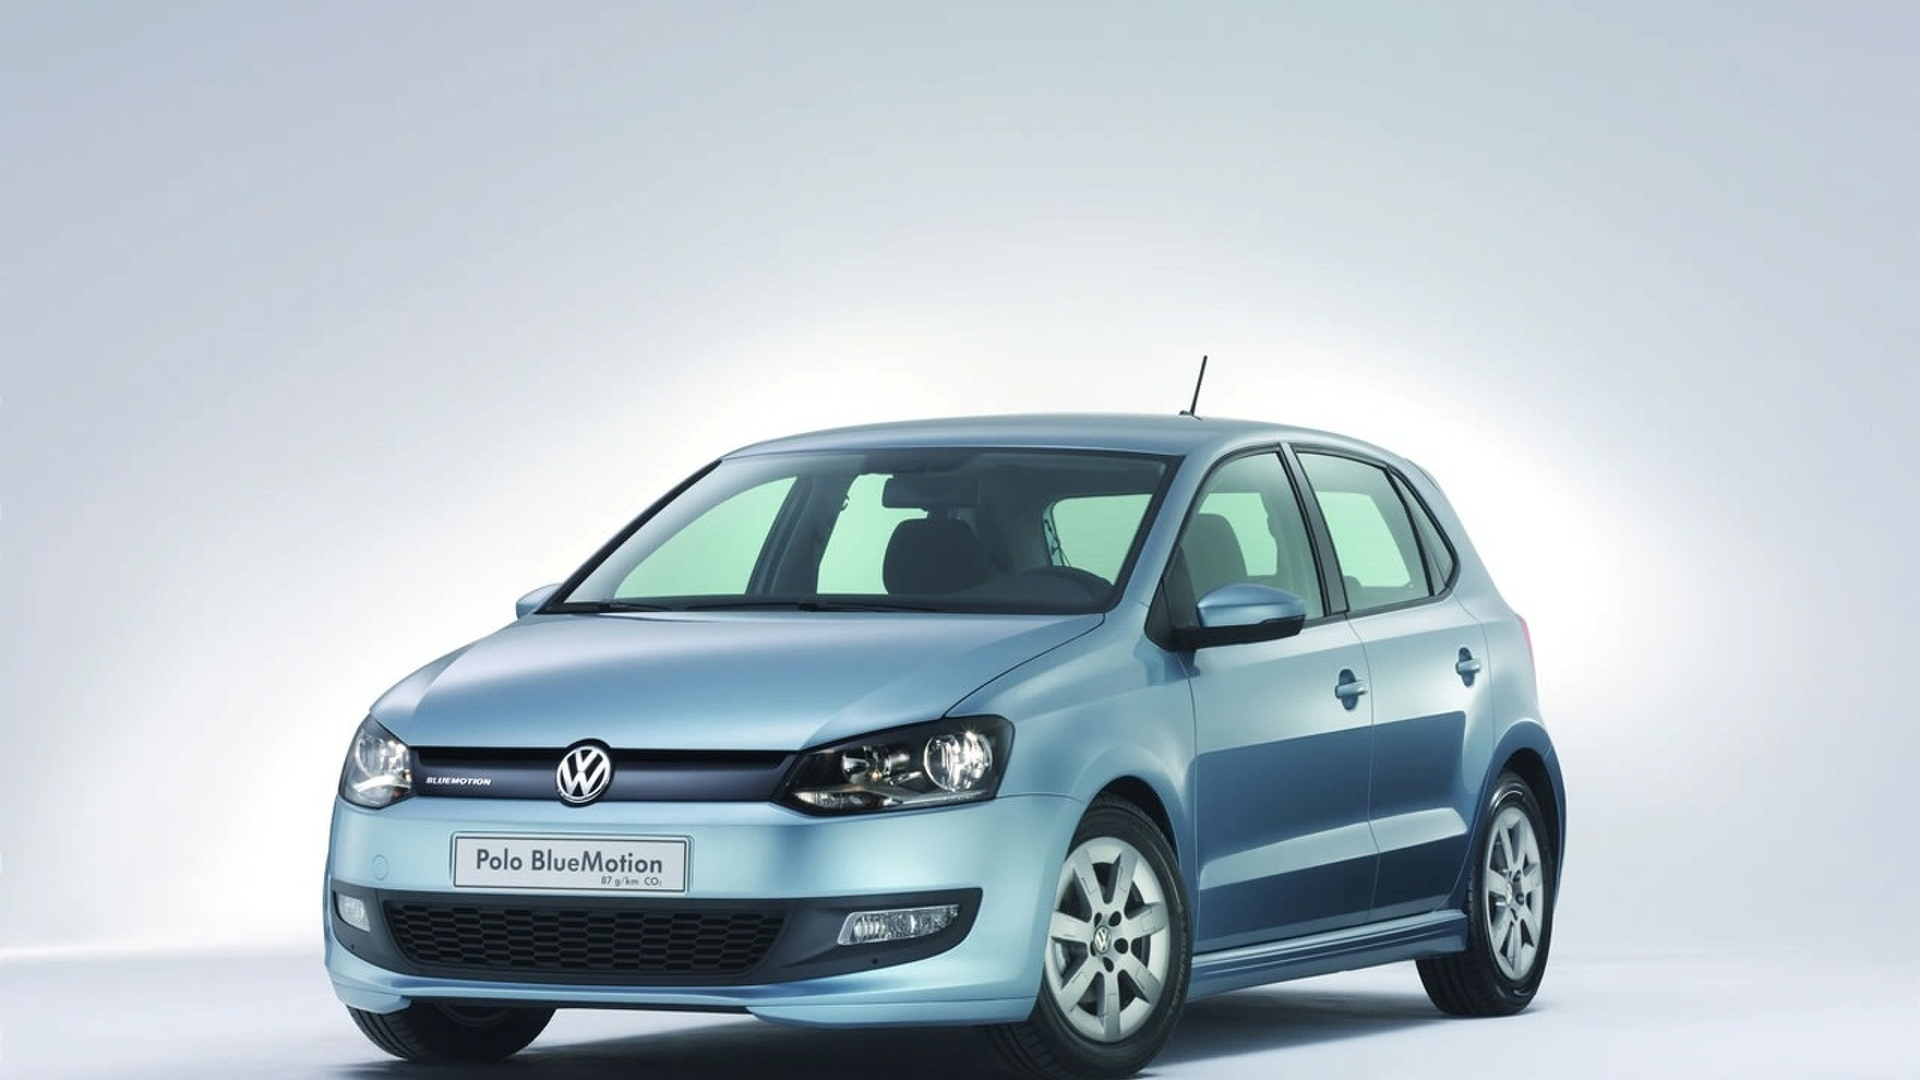 Geneva 2009: Volkswagen Polo BlueMotion Concept Car